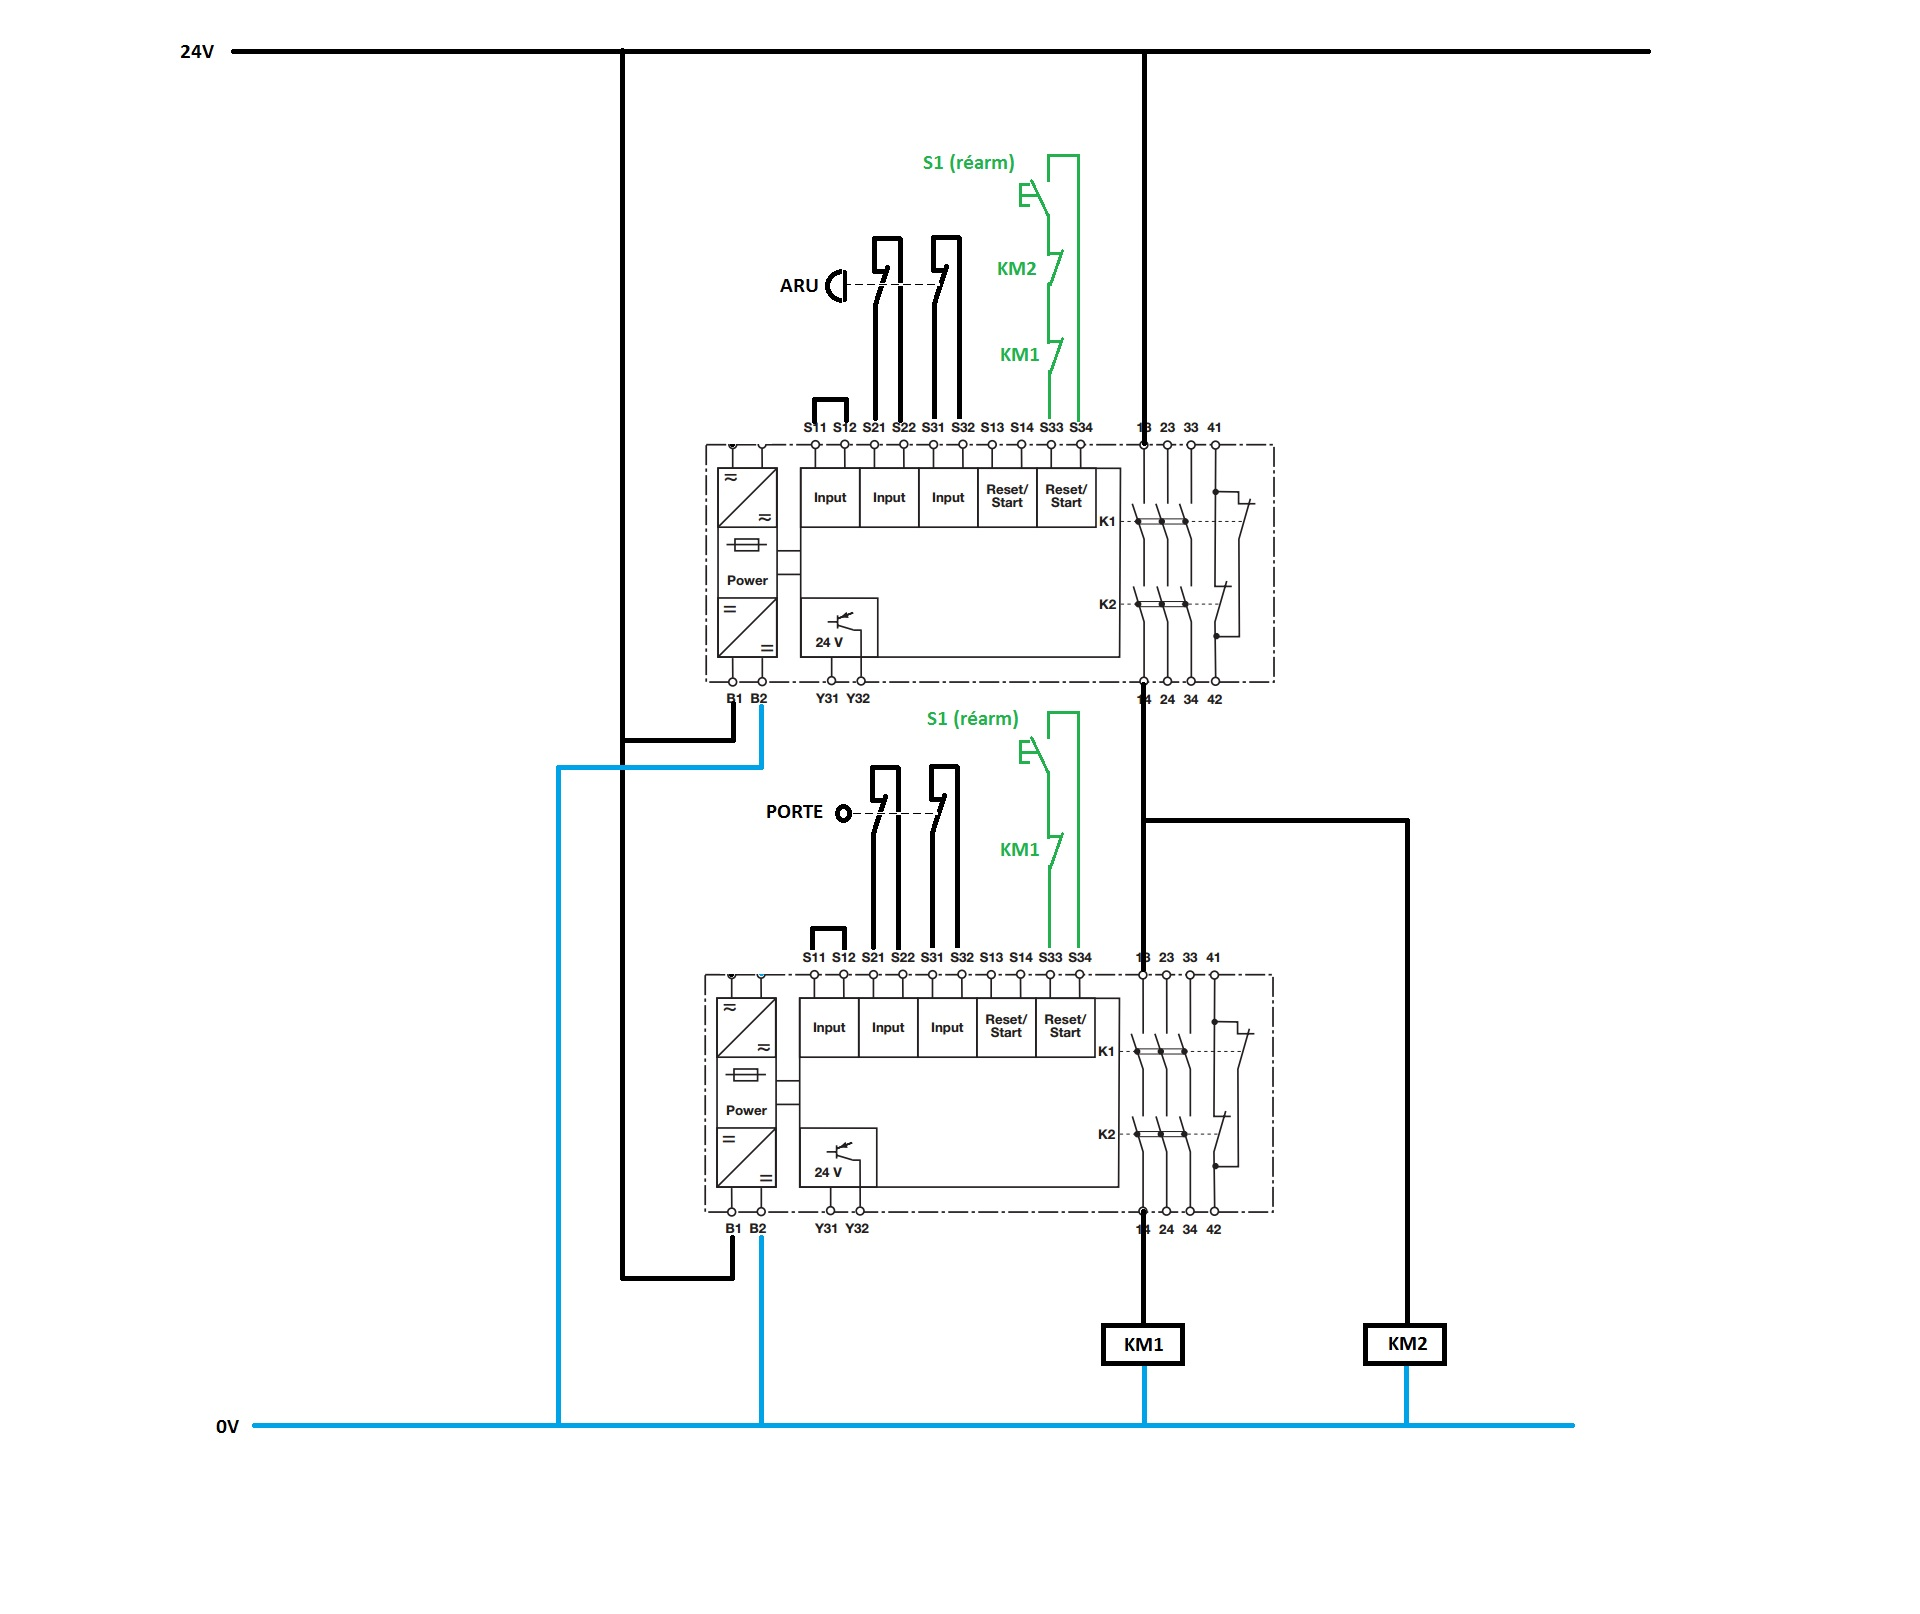 diagram of wiring with T6181 Mise En Serie De Plusieurs Relais De Secu Et Gestion Boucle De Retour Des Km on Valvestate moreover presor Copeland 24btu Piston T1429636 as well SXdqZn further 557093 Installing Light Fixture Neutral Wire Hot in addition Misc.